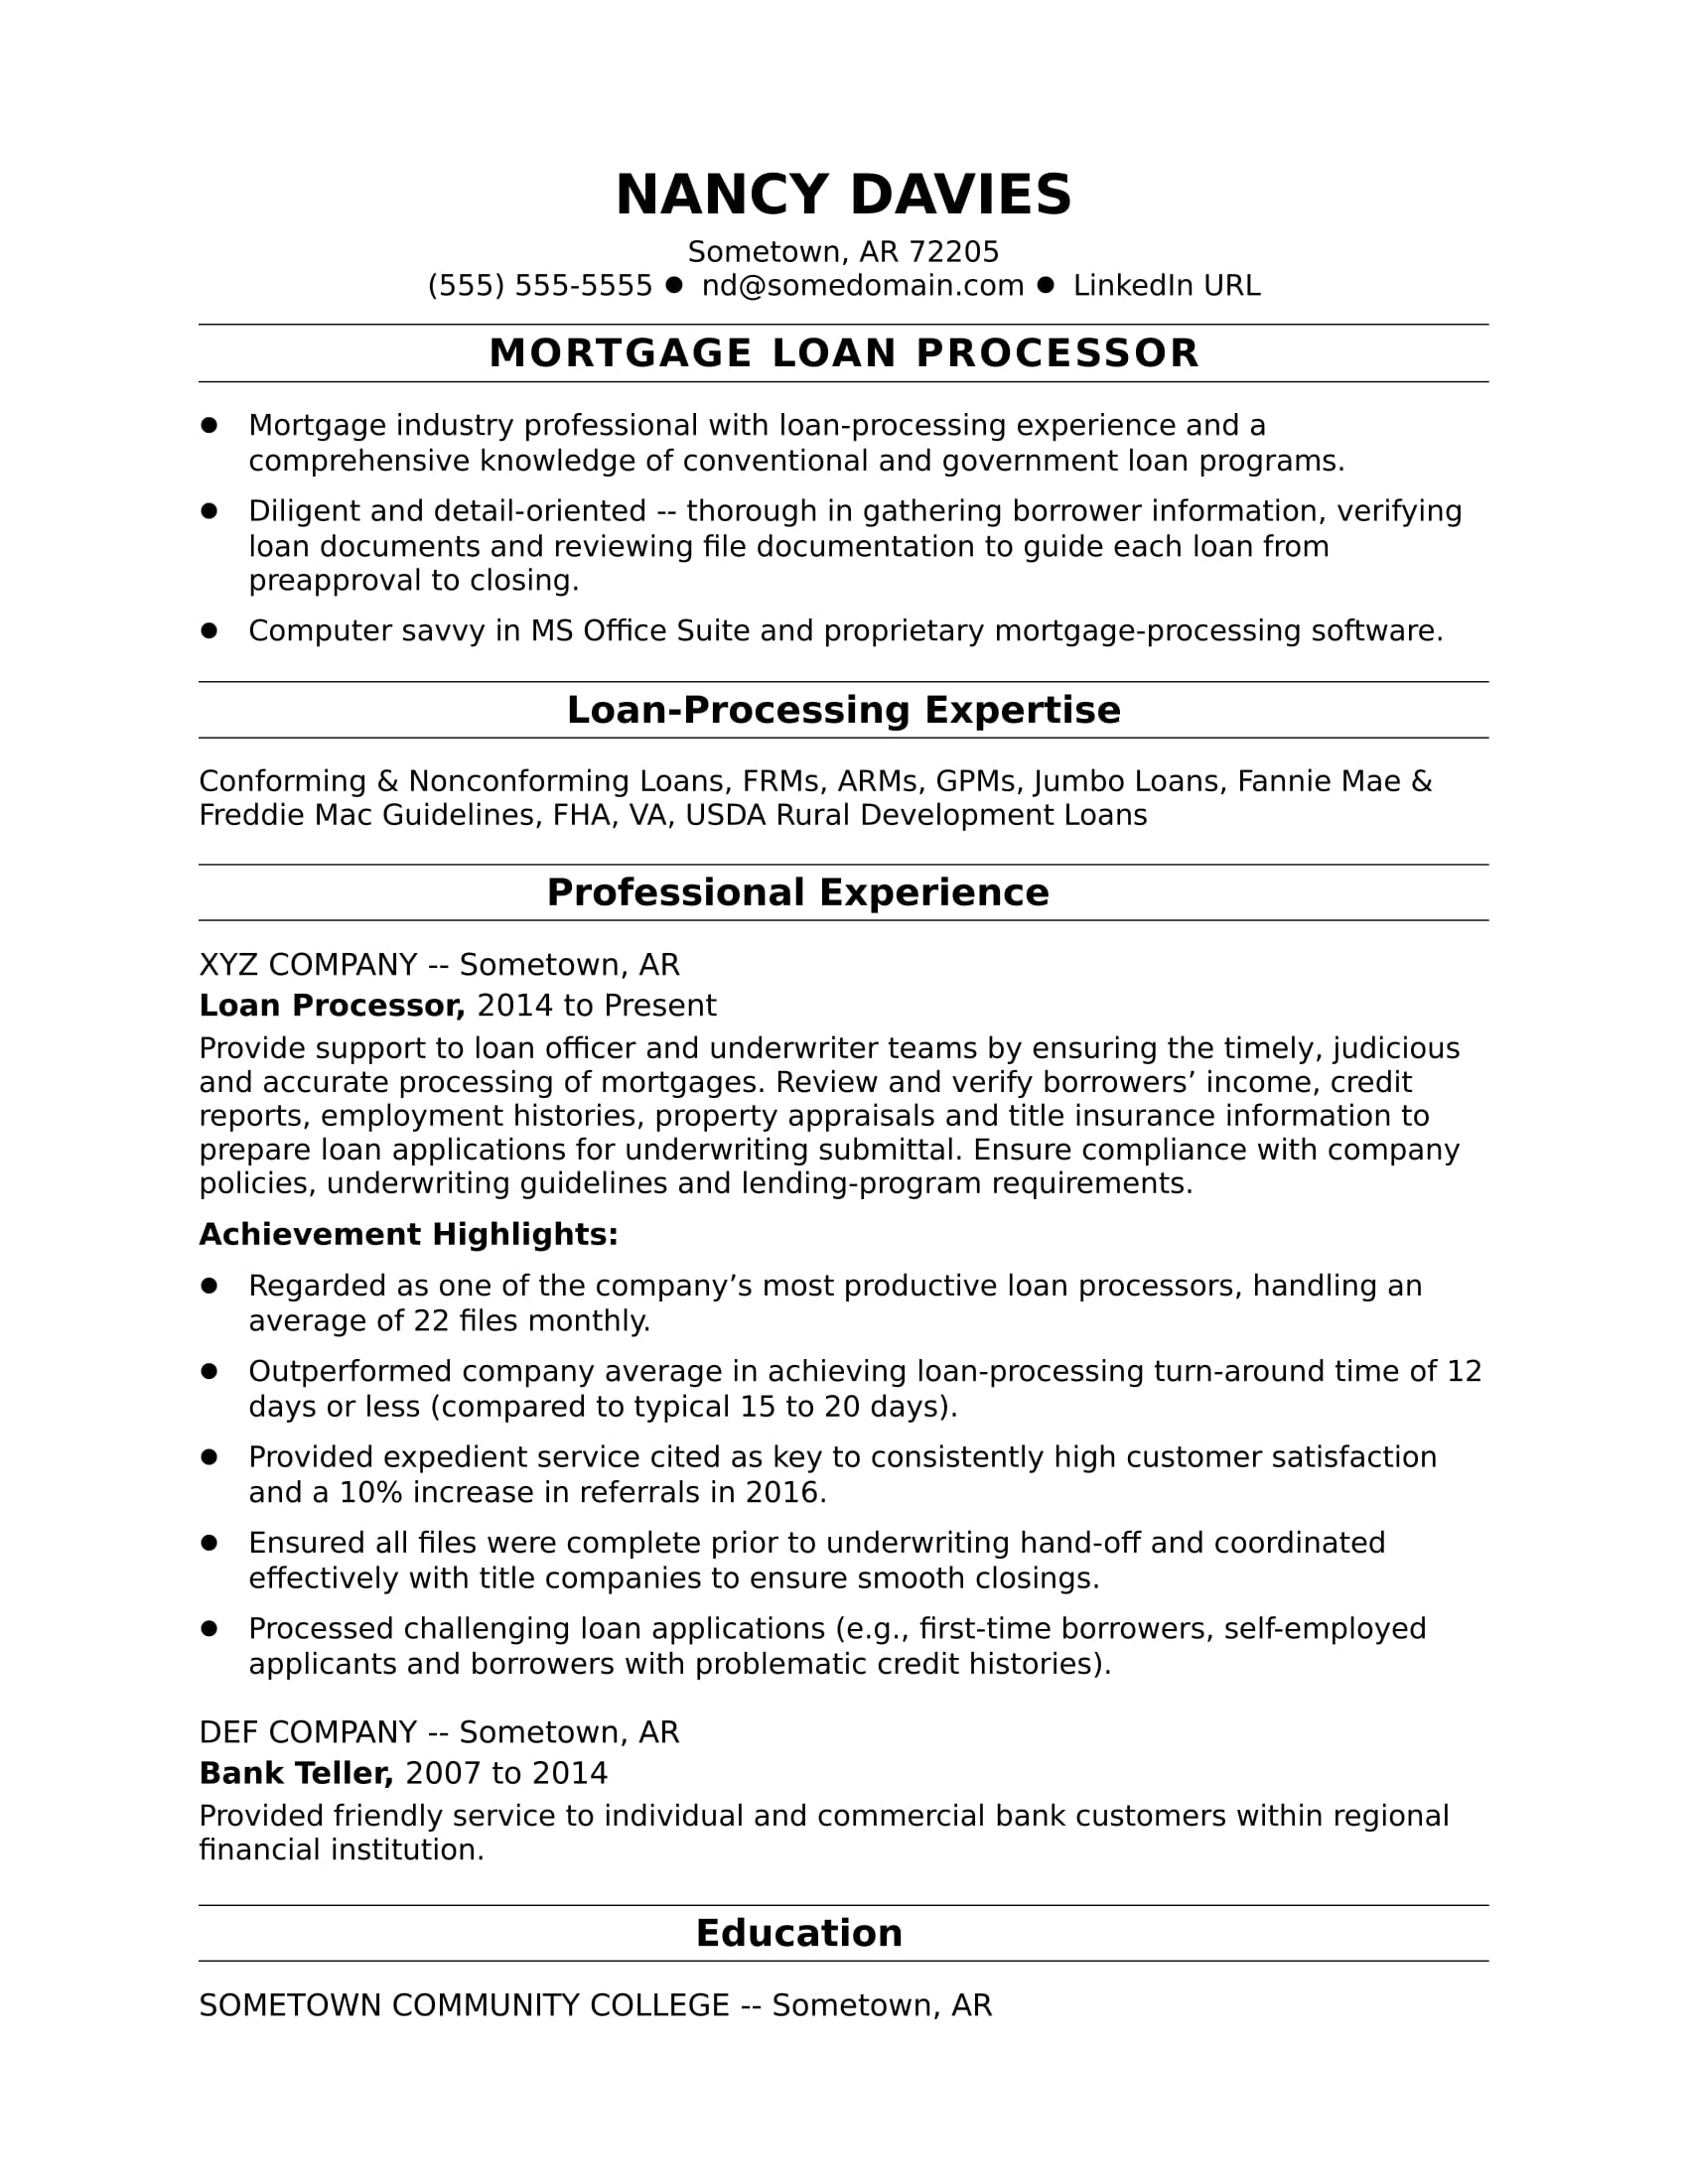 Sample Resume For A Mortgage Loan Processor  Resume Company